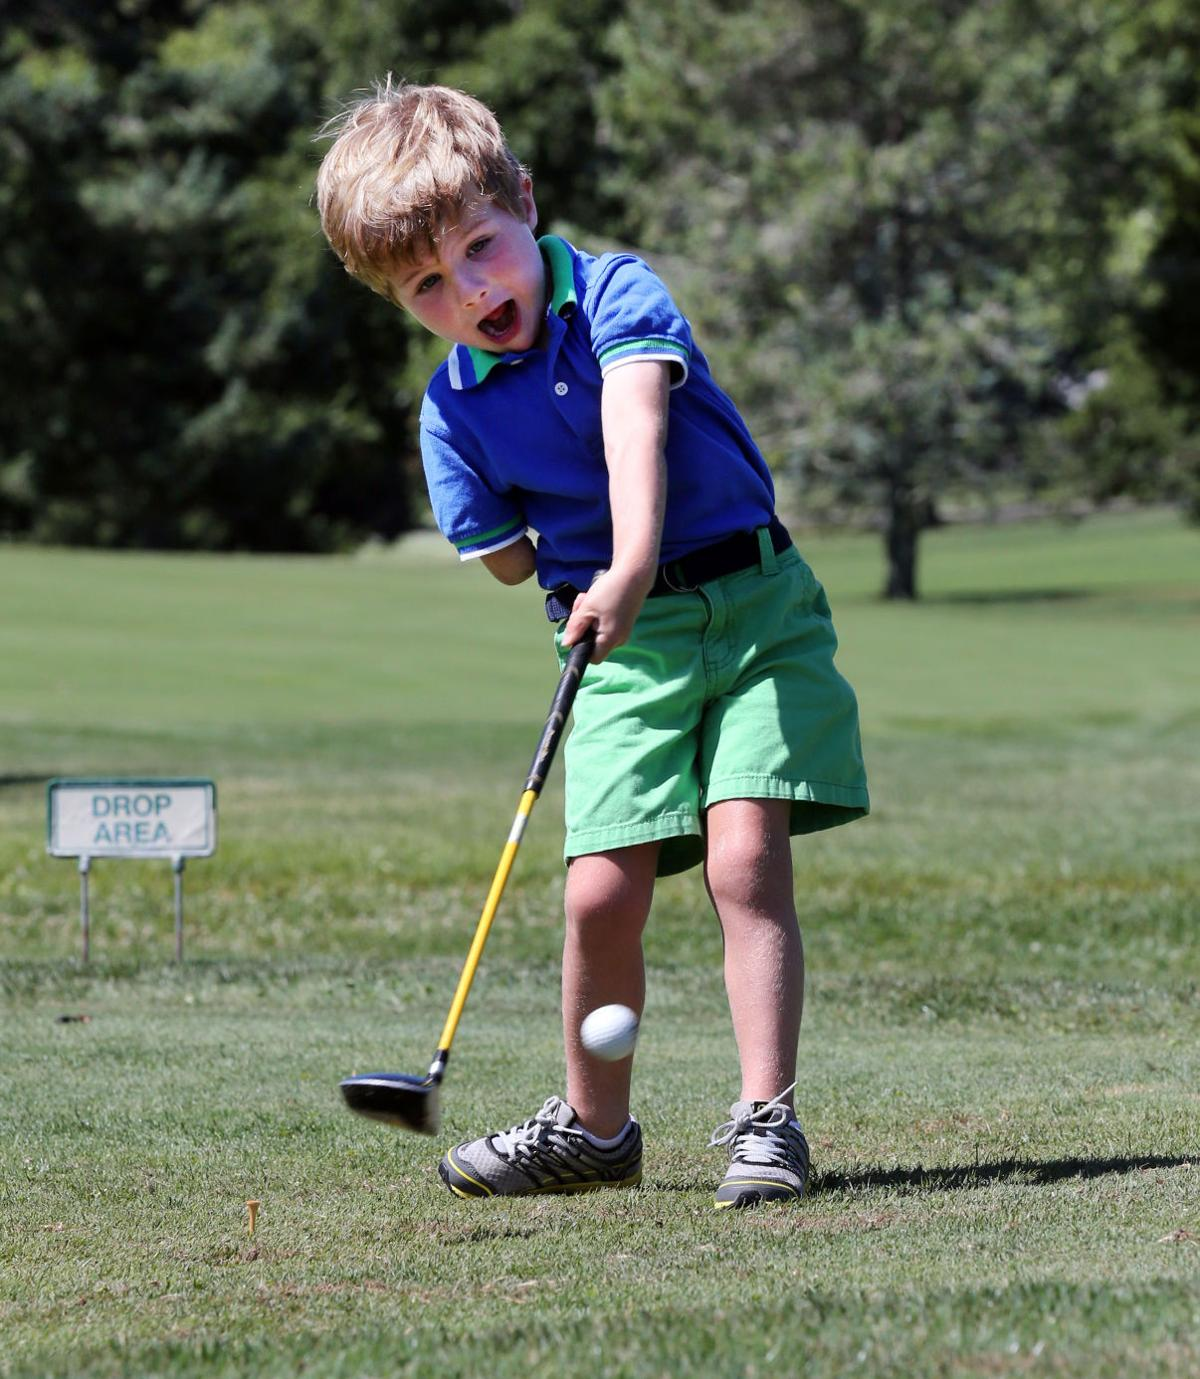 3-year-old golfer amazes with one-arm swing | Sports ...